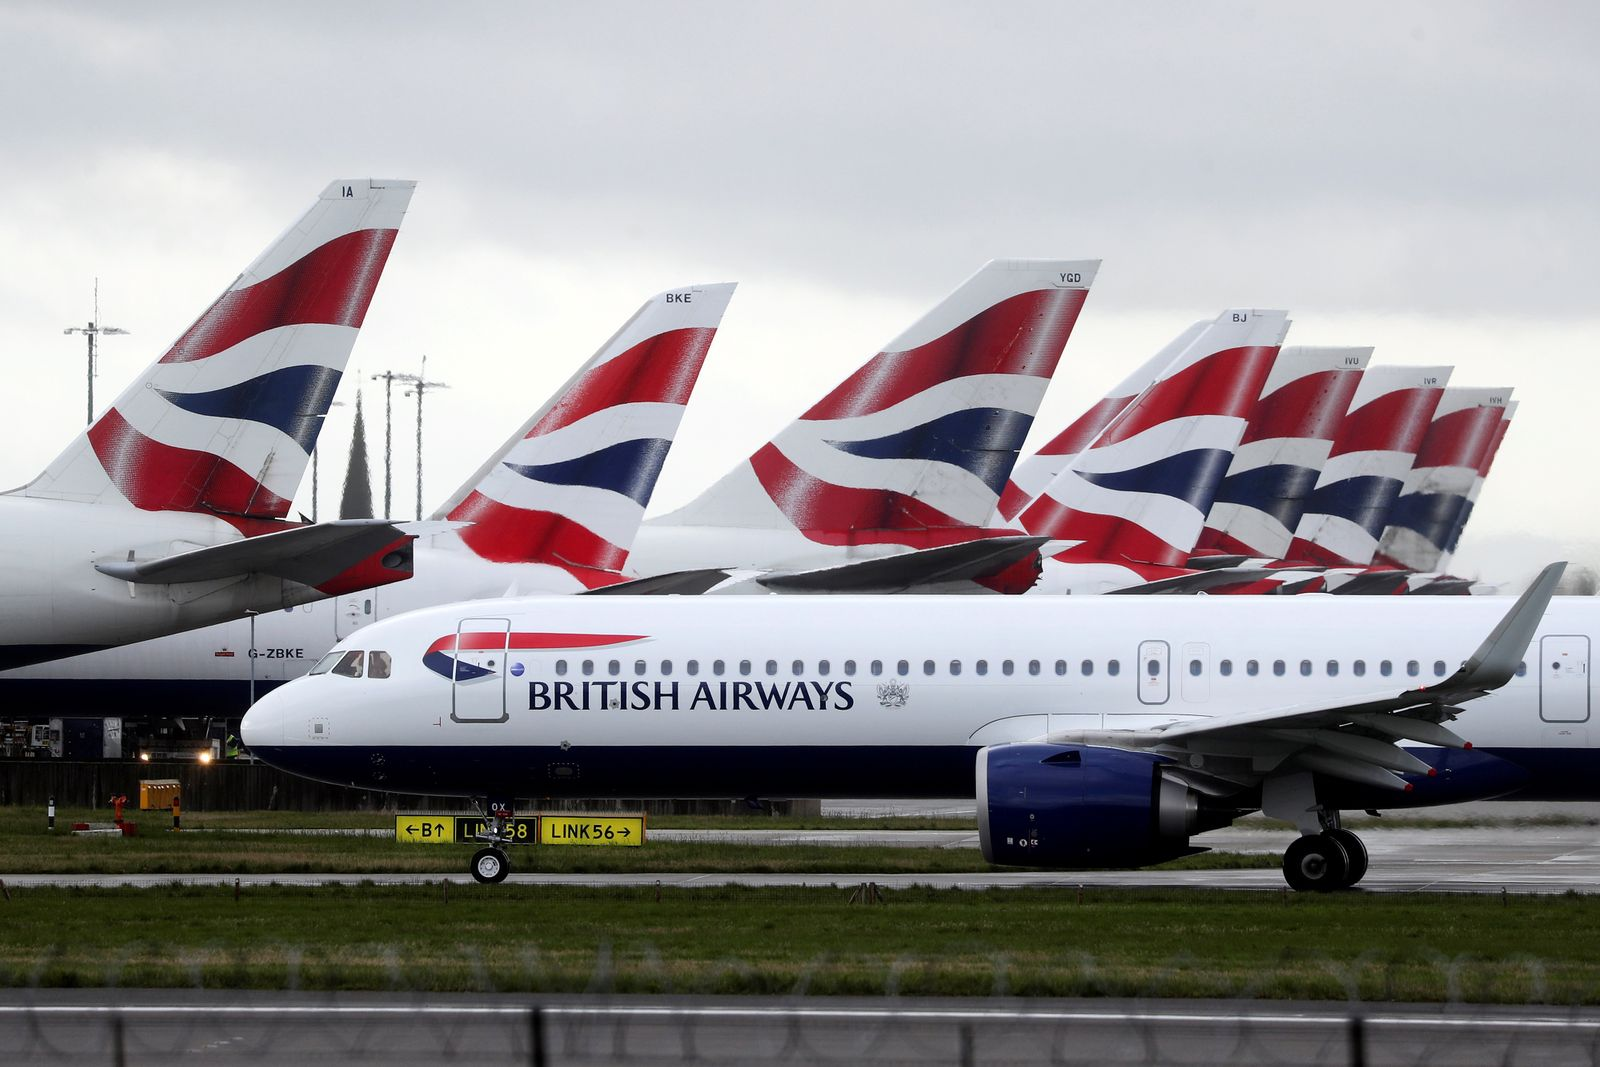 BA plane taxis past tail fins of parked aircraft to runway near Terminal 5 at Heathrow Airport